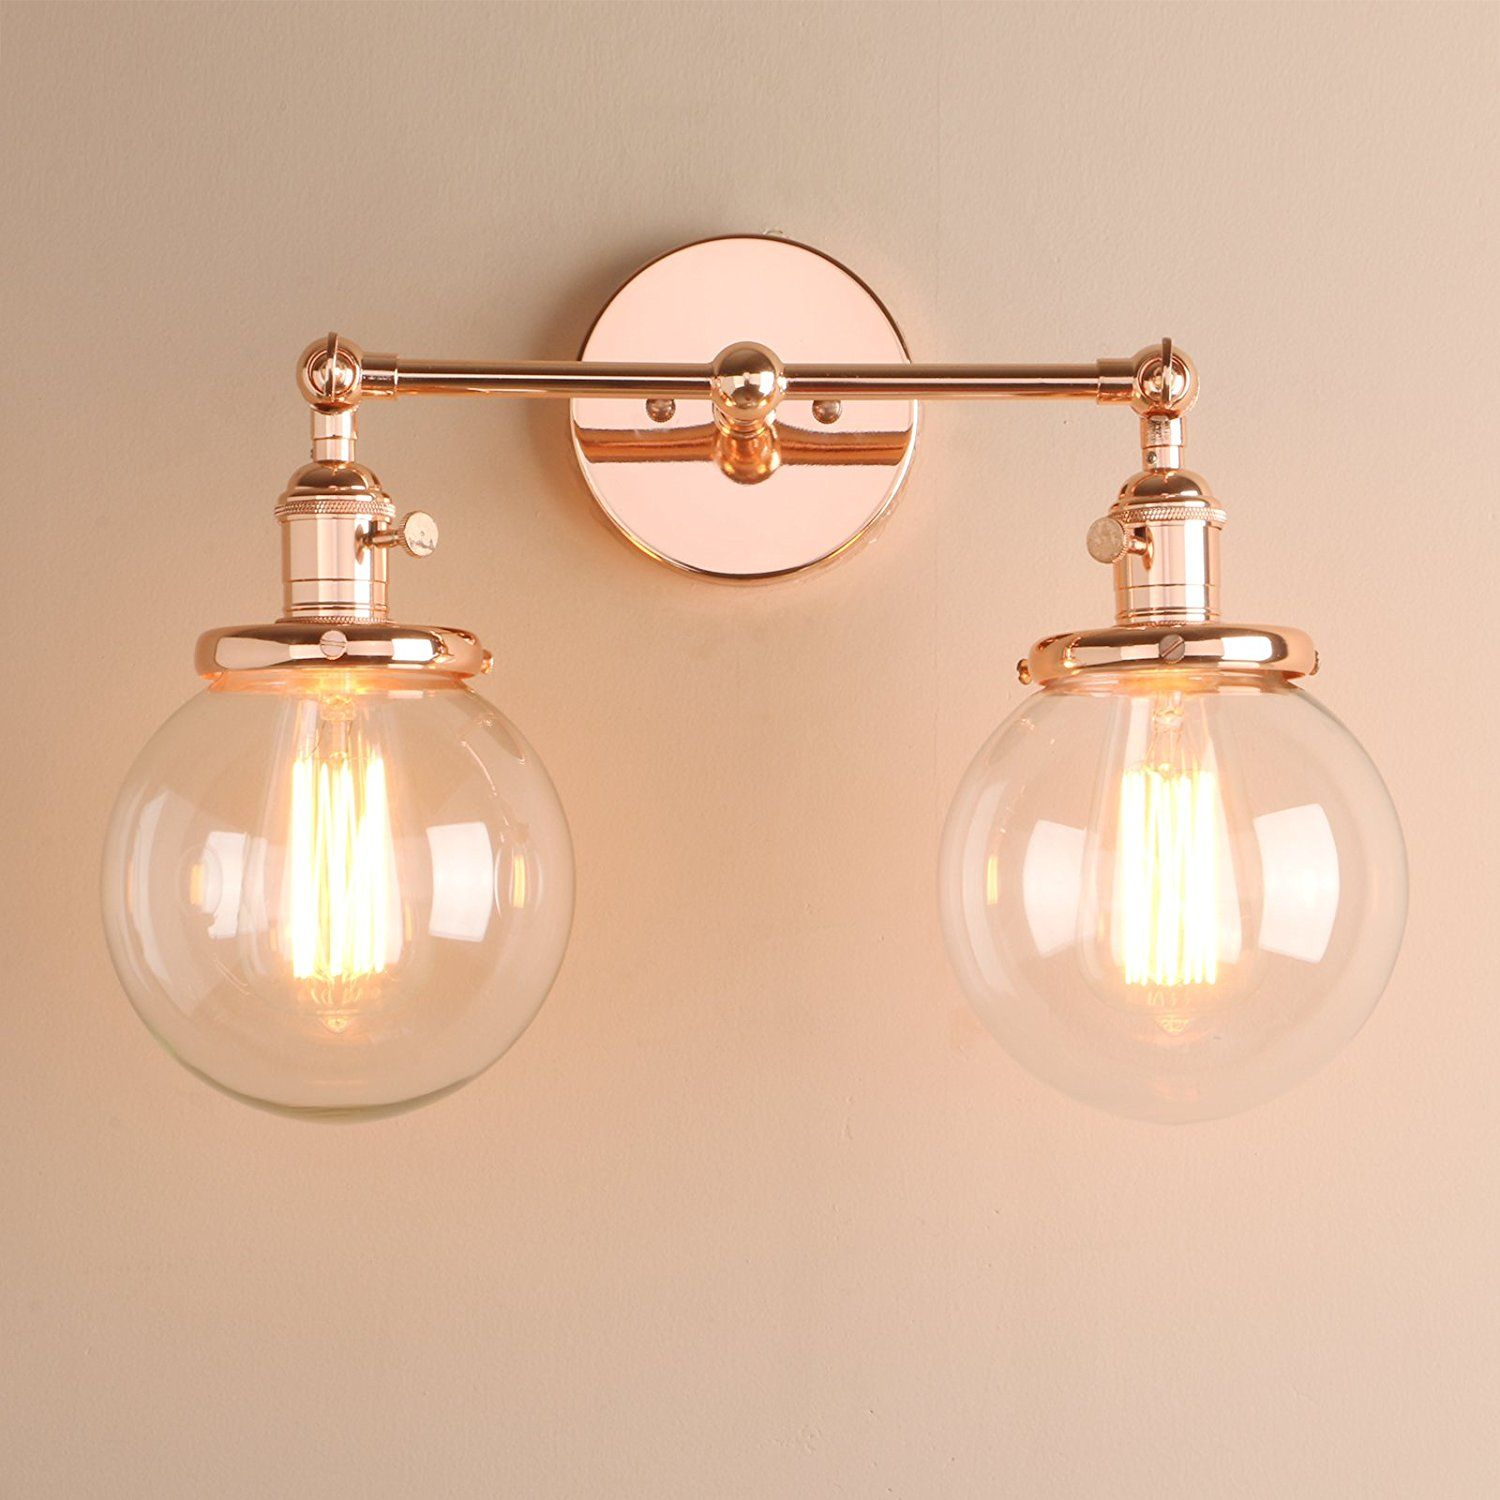 Pathson Stylish Vintage Industrial Modern Double Wall Lights Loft Cafe Bar Wall Sconce Light Lamp Fixtures With Globe Clear Glass Shade Copper Amazon Lamparas